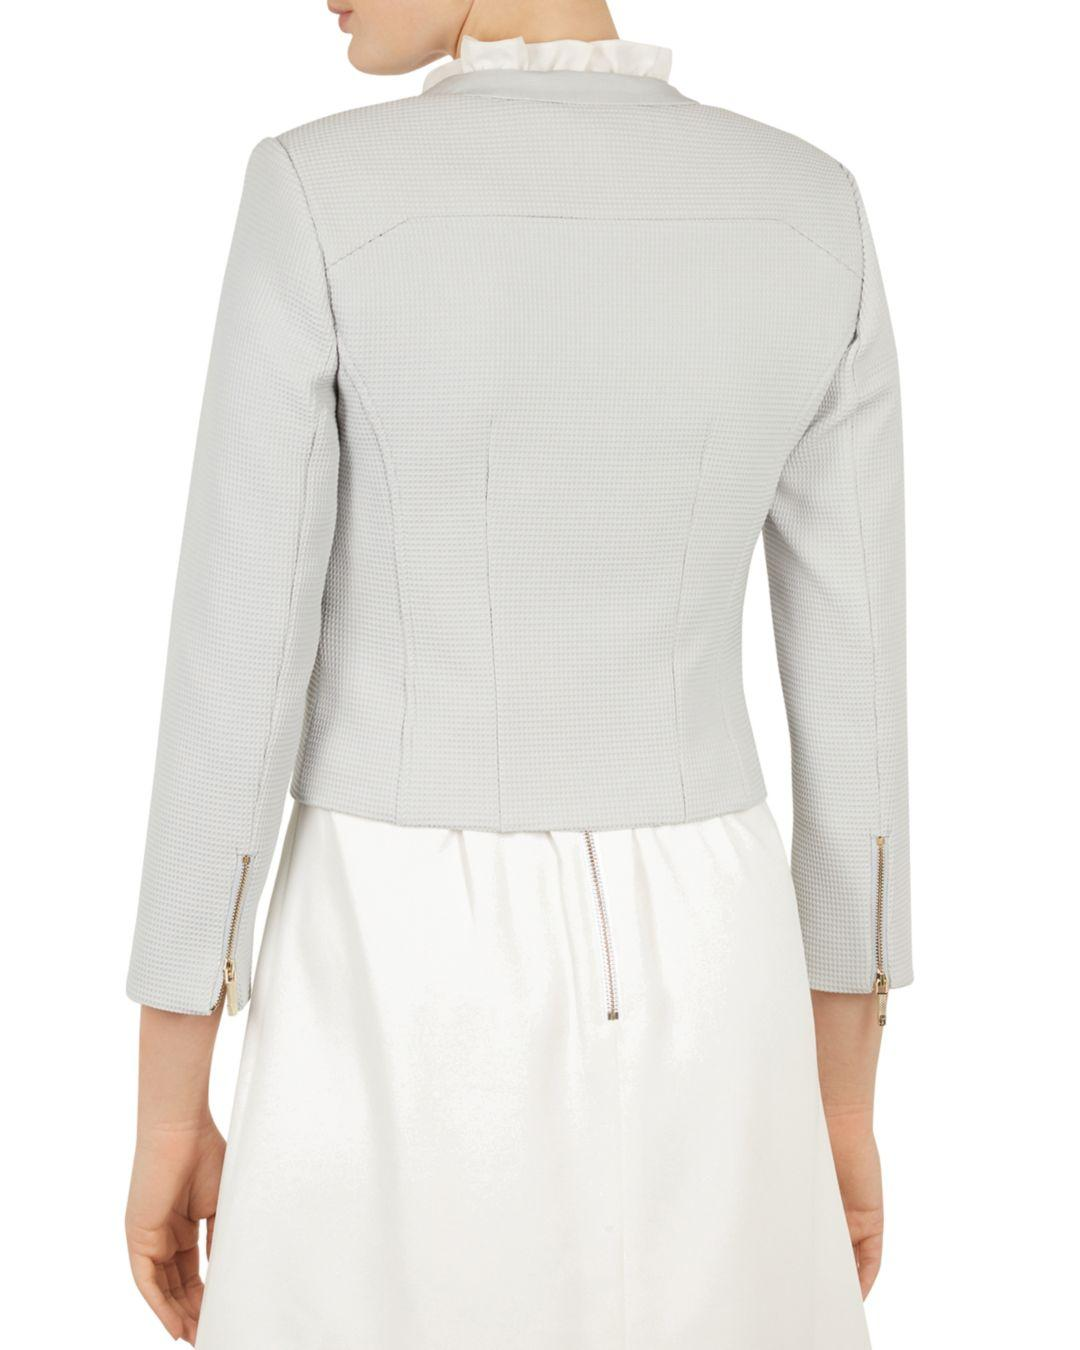 a8b3de64f43a Lyst - Ted Baker Reemad Cropped Textured Jacket in Gray